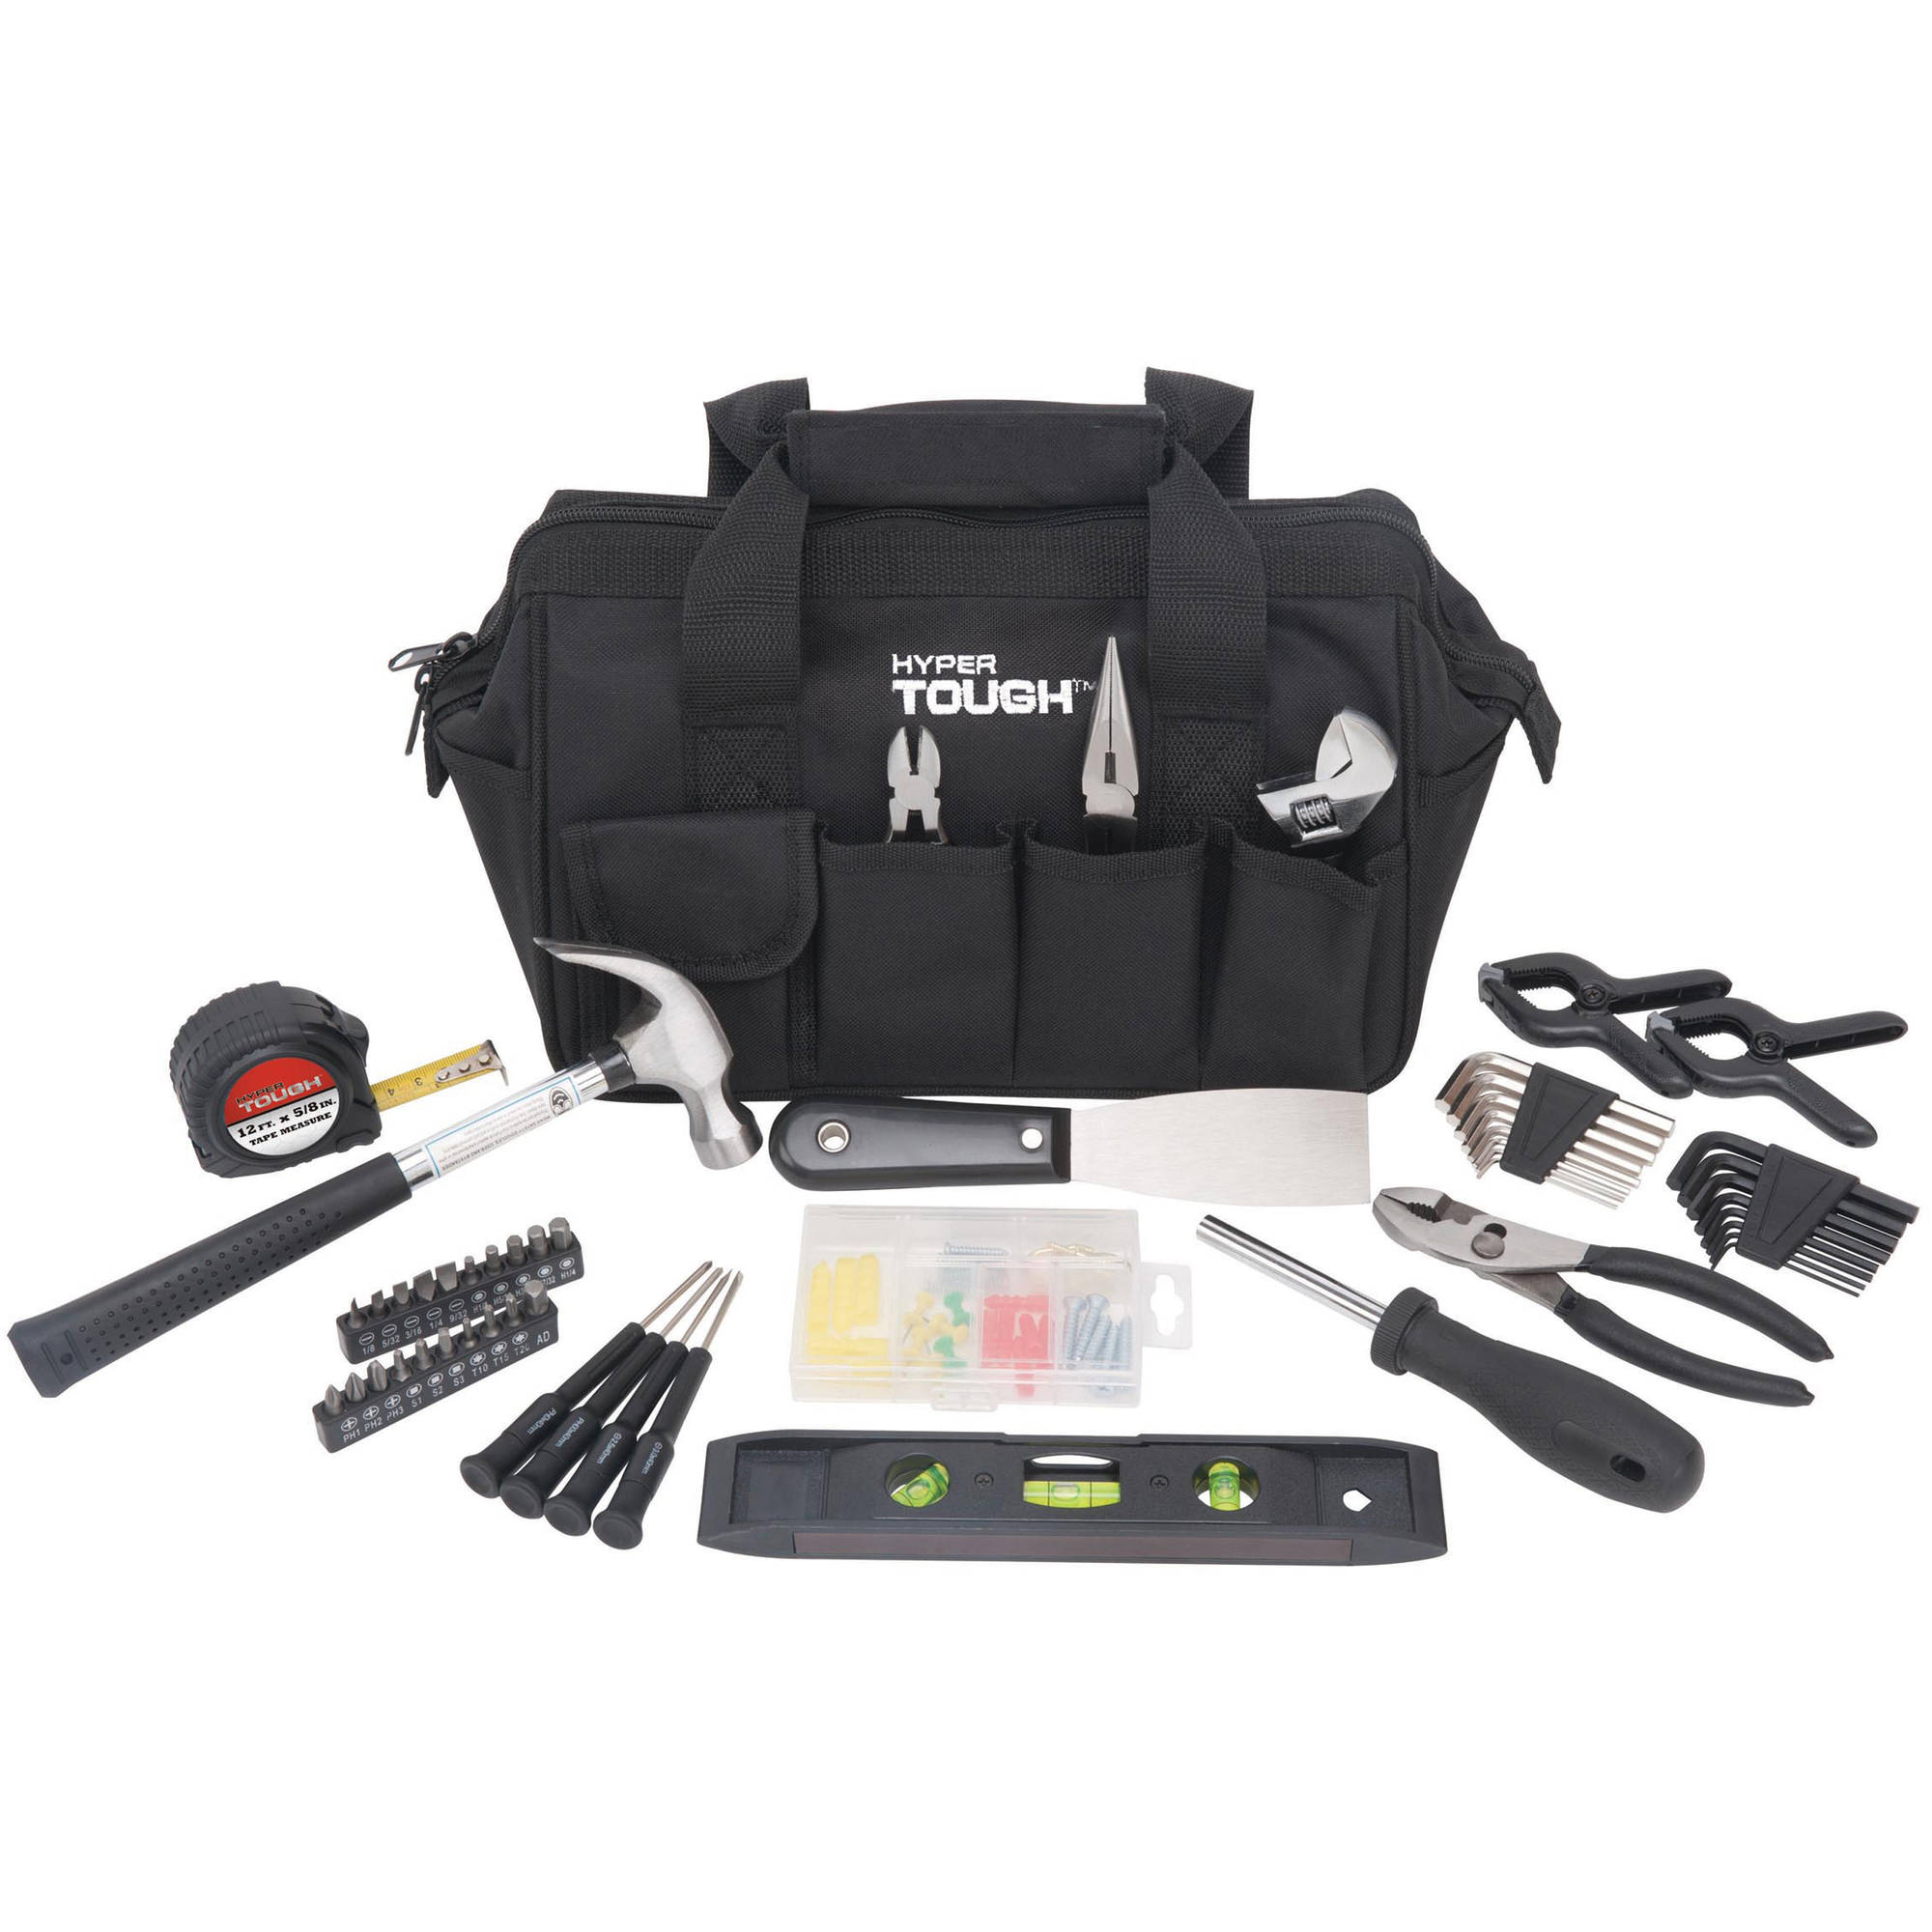 Hyper Tough 53-Piece Home Repair Tool Set, Black by HANGZHOU GREATSTAR INDUSTRIAL CO LTD